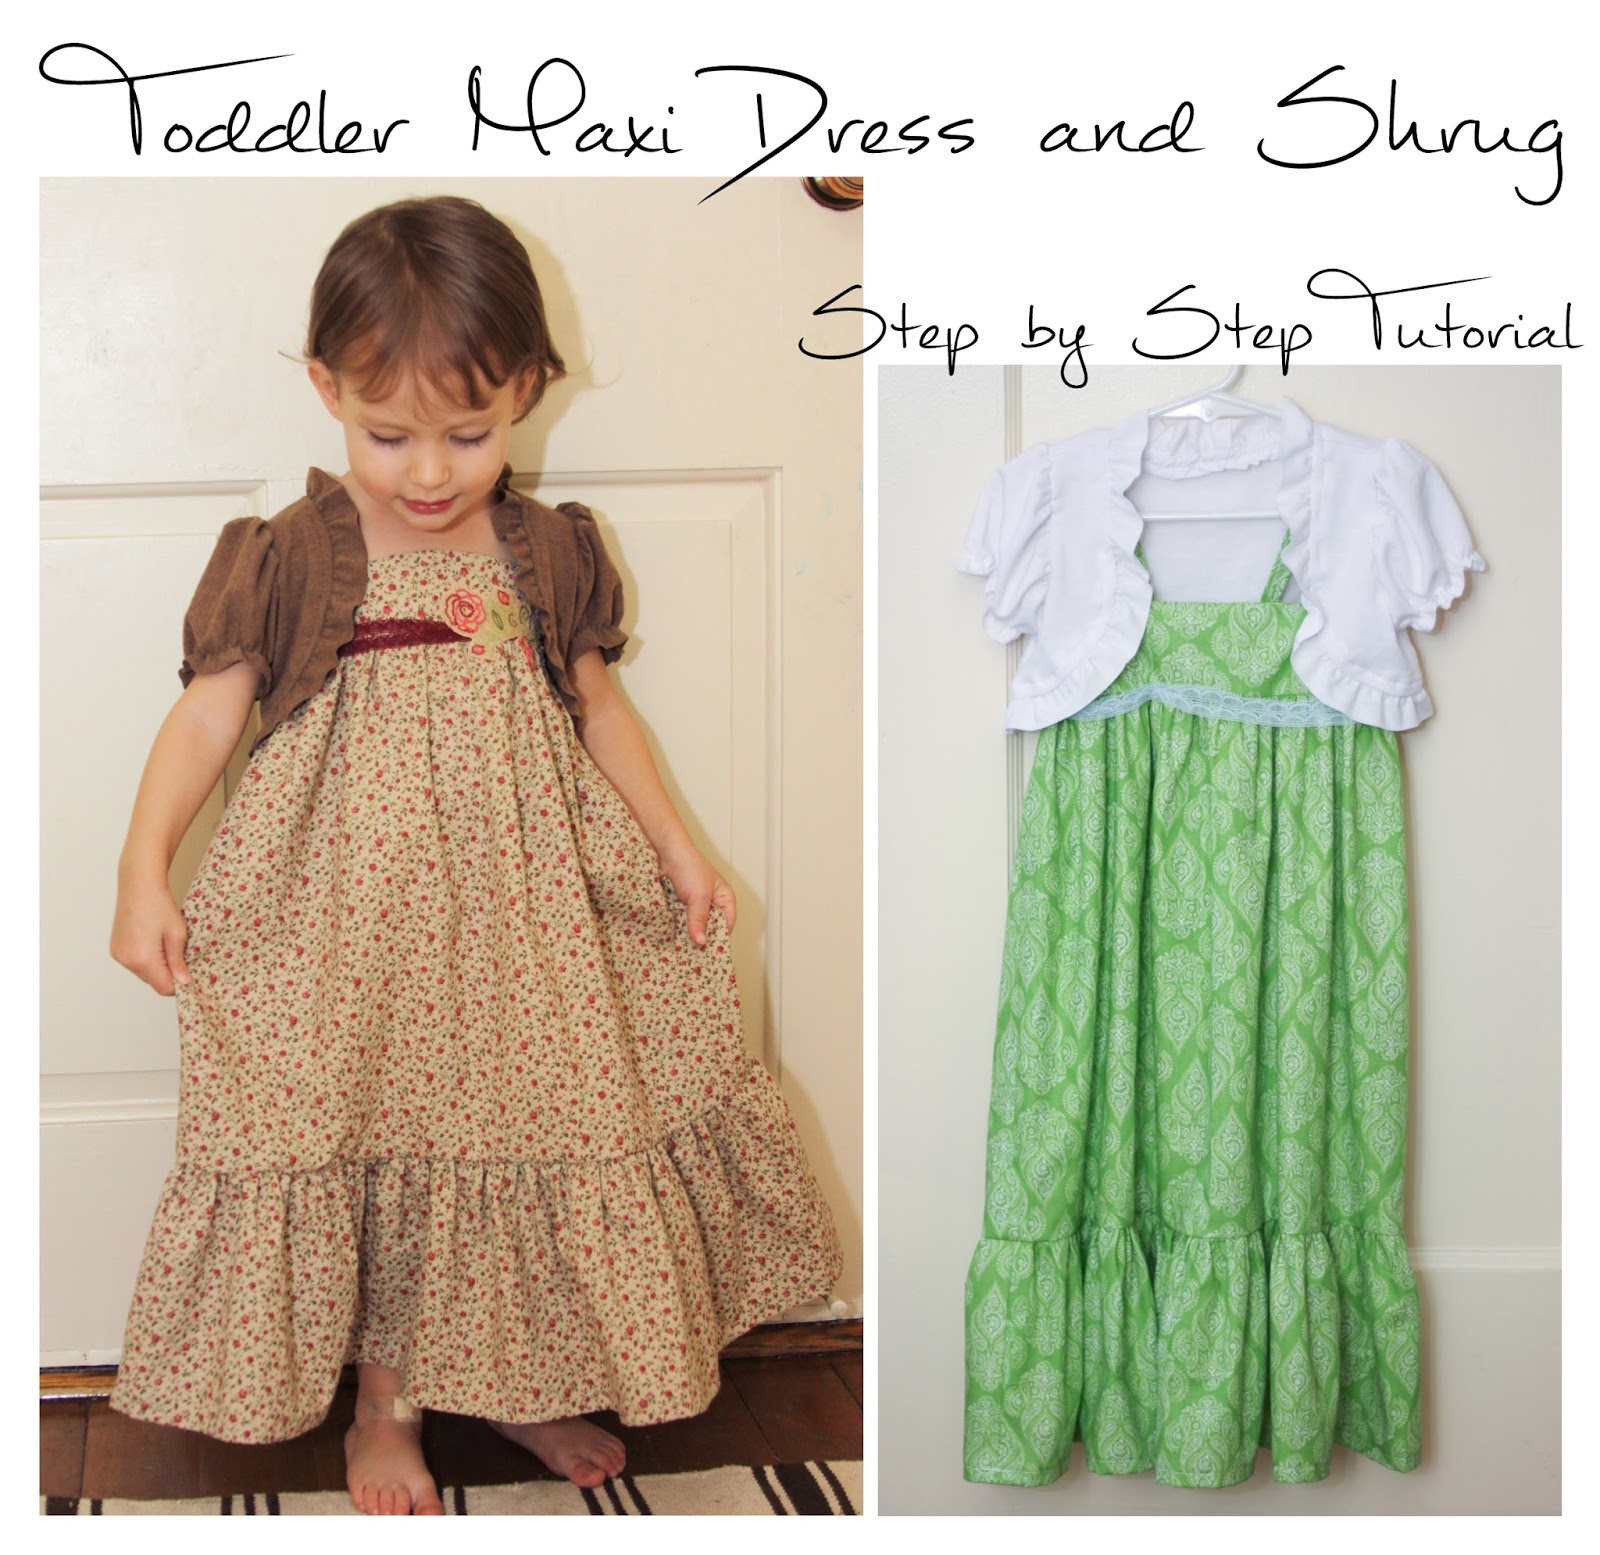 Maxi dress patterns for girls